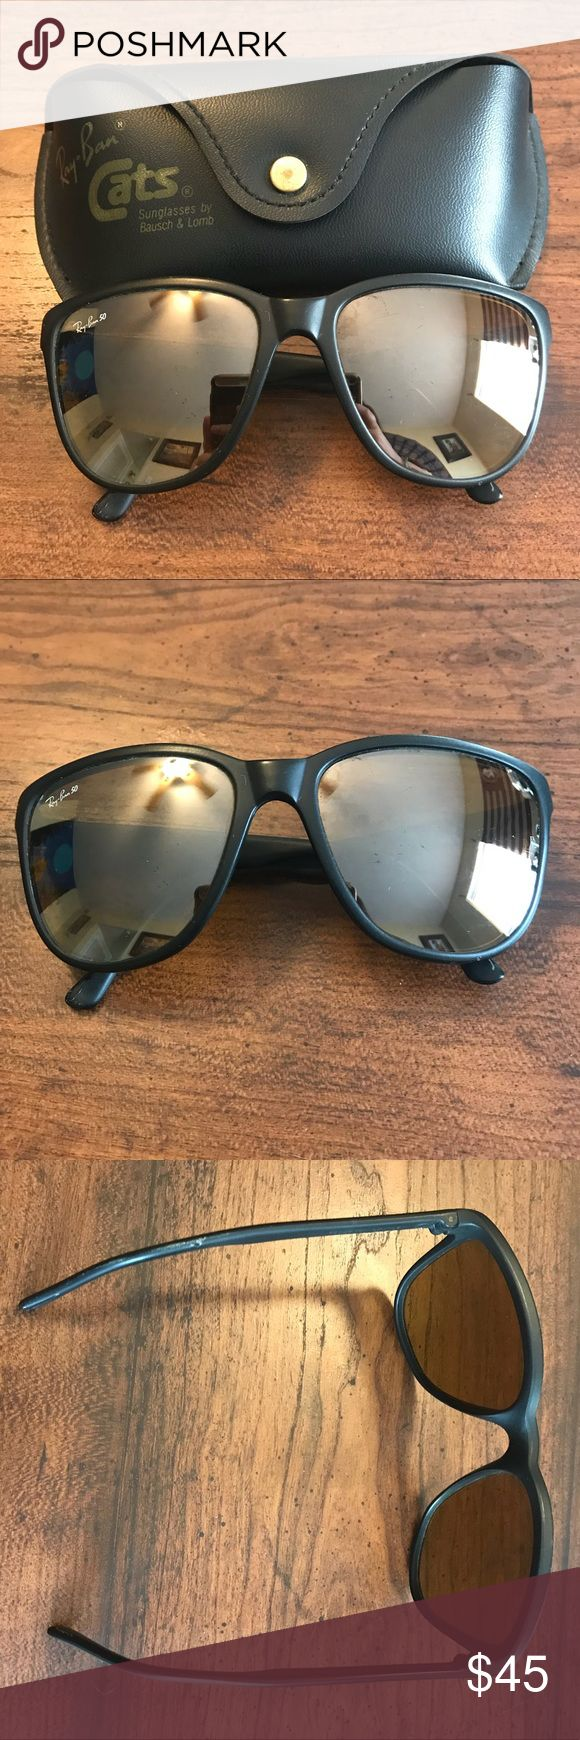 "Ray-Ban ""Cats"" Vintage Sunglasses Ray-ban vintage sunglasses with black rims and slightly golden reflective lenses. Case is included. In good condition, but they do have some slight scratches. A little bit bigger than modern Wayfarer Ray-bans Ray-Ban Accessories Sunglasses"